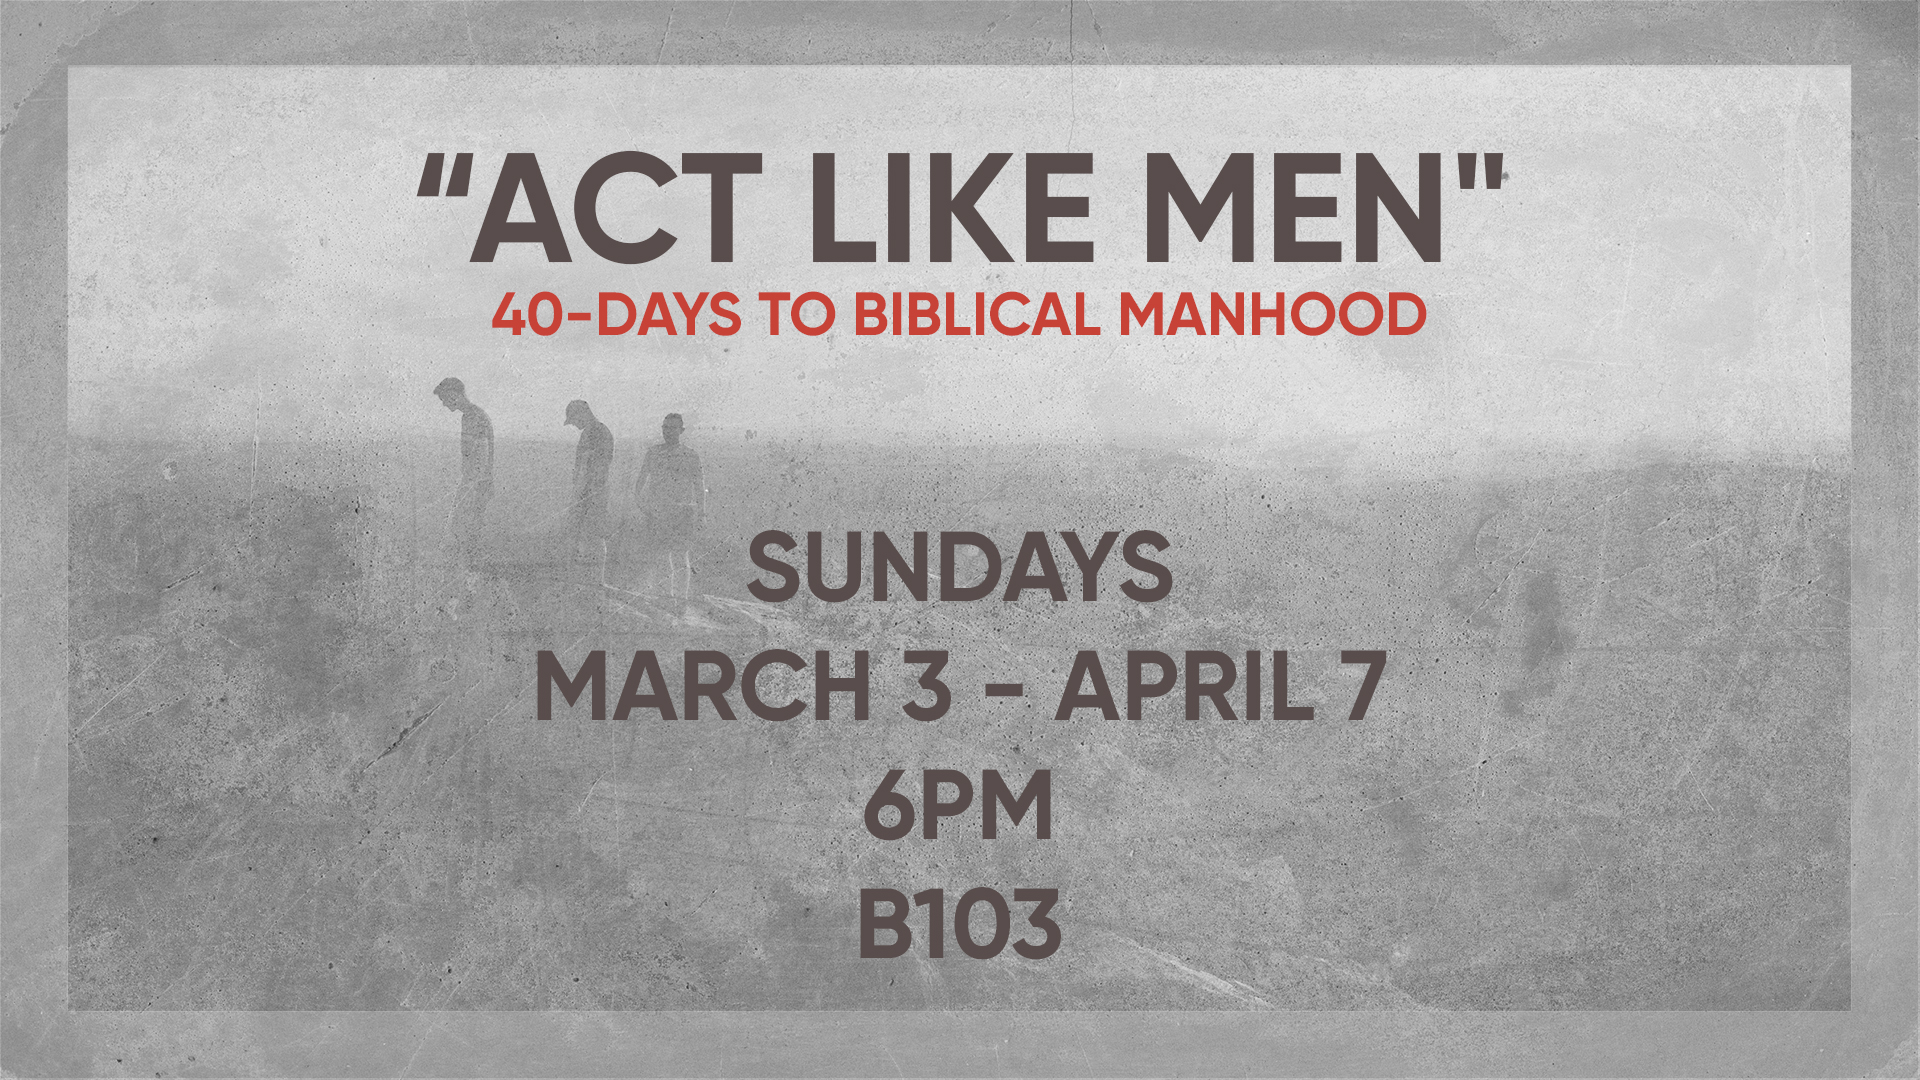 Act Like Men: 40-days to Biblical Manhood